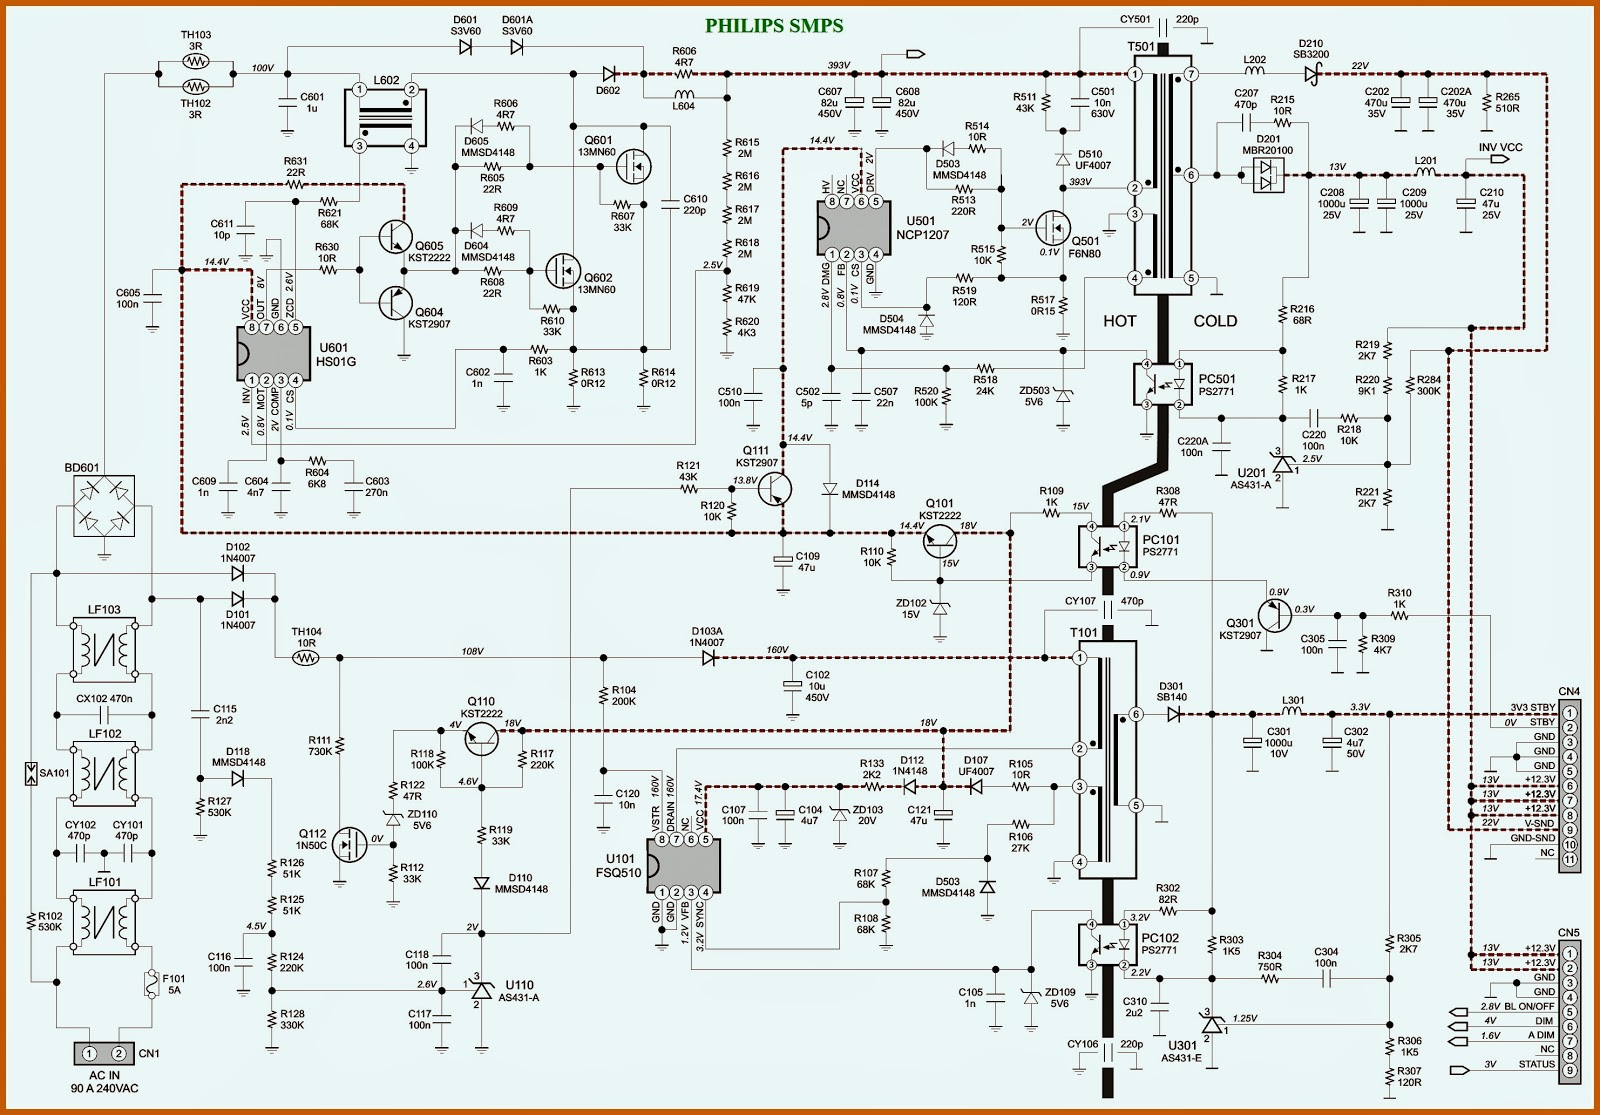 wiring diagrams furthermore lcd tv power supply schematic diagram diagram furthermore samsung tv schematic circuit diagram on tv wiring [ 1600 x 1115 Pixel ]